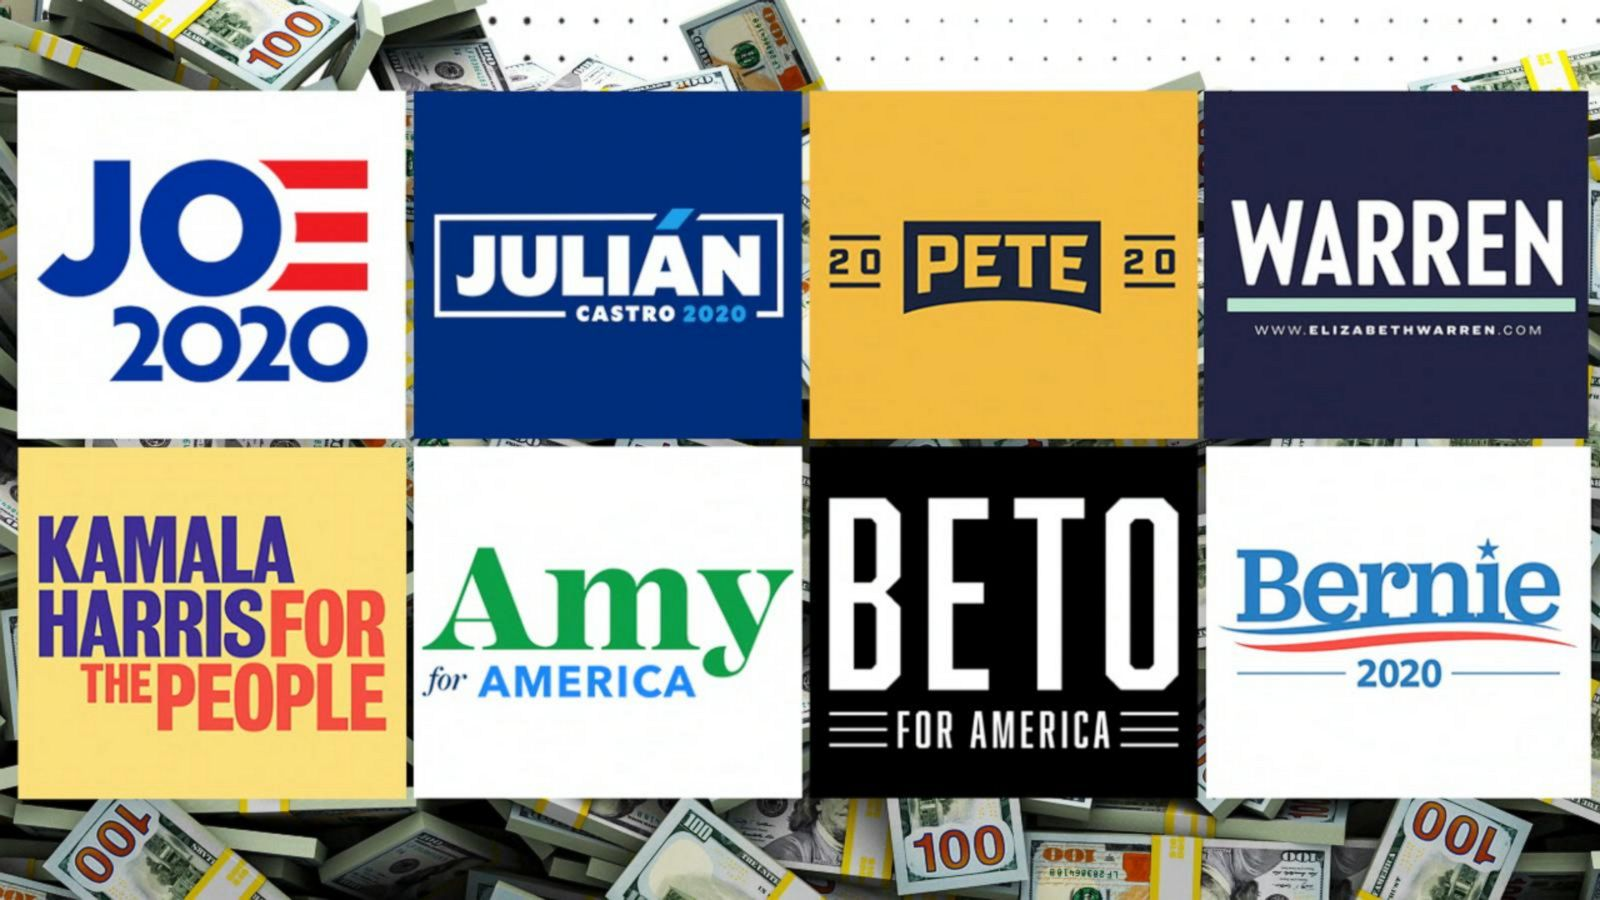 Do You Buy That … Fundraising Matters More Than Polling In The 2020 Race?